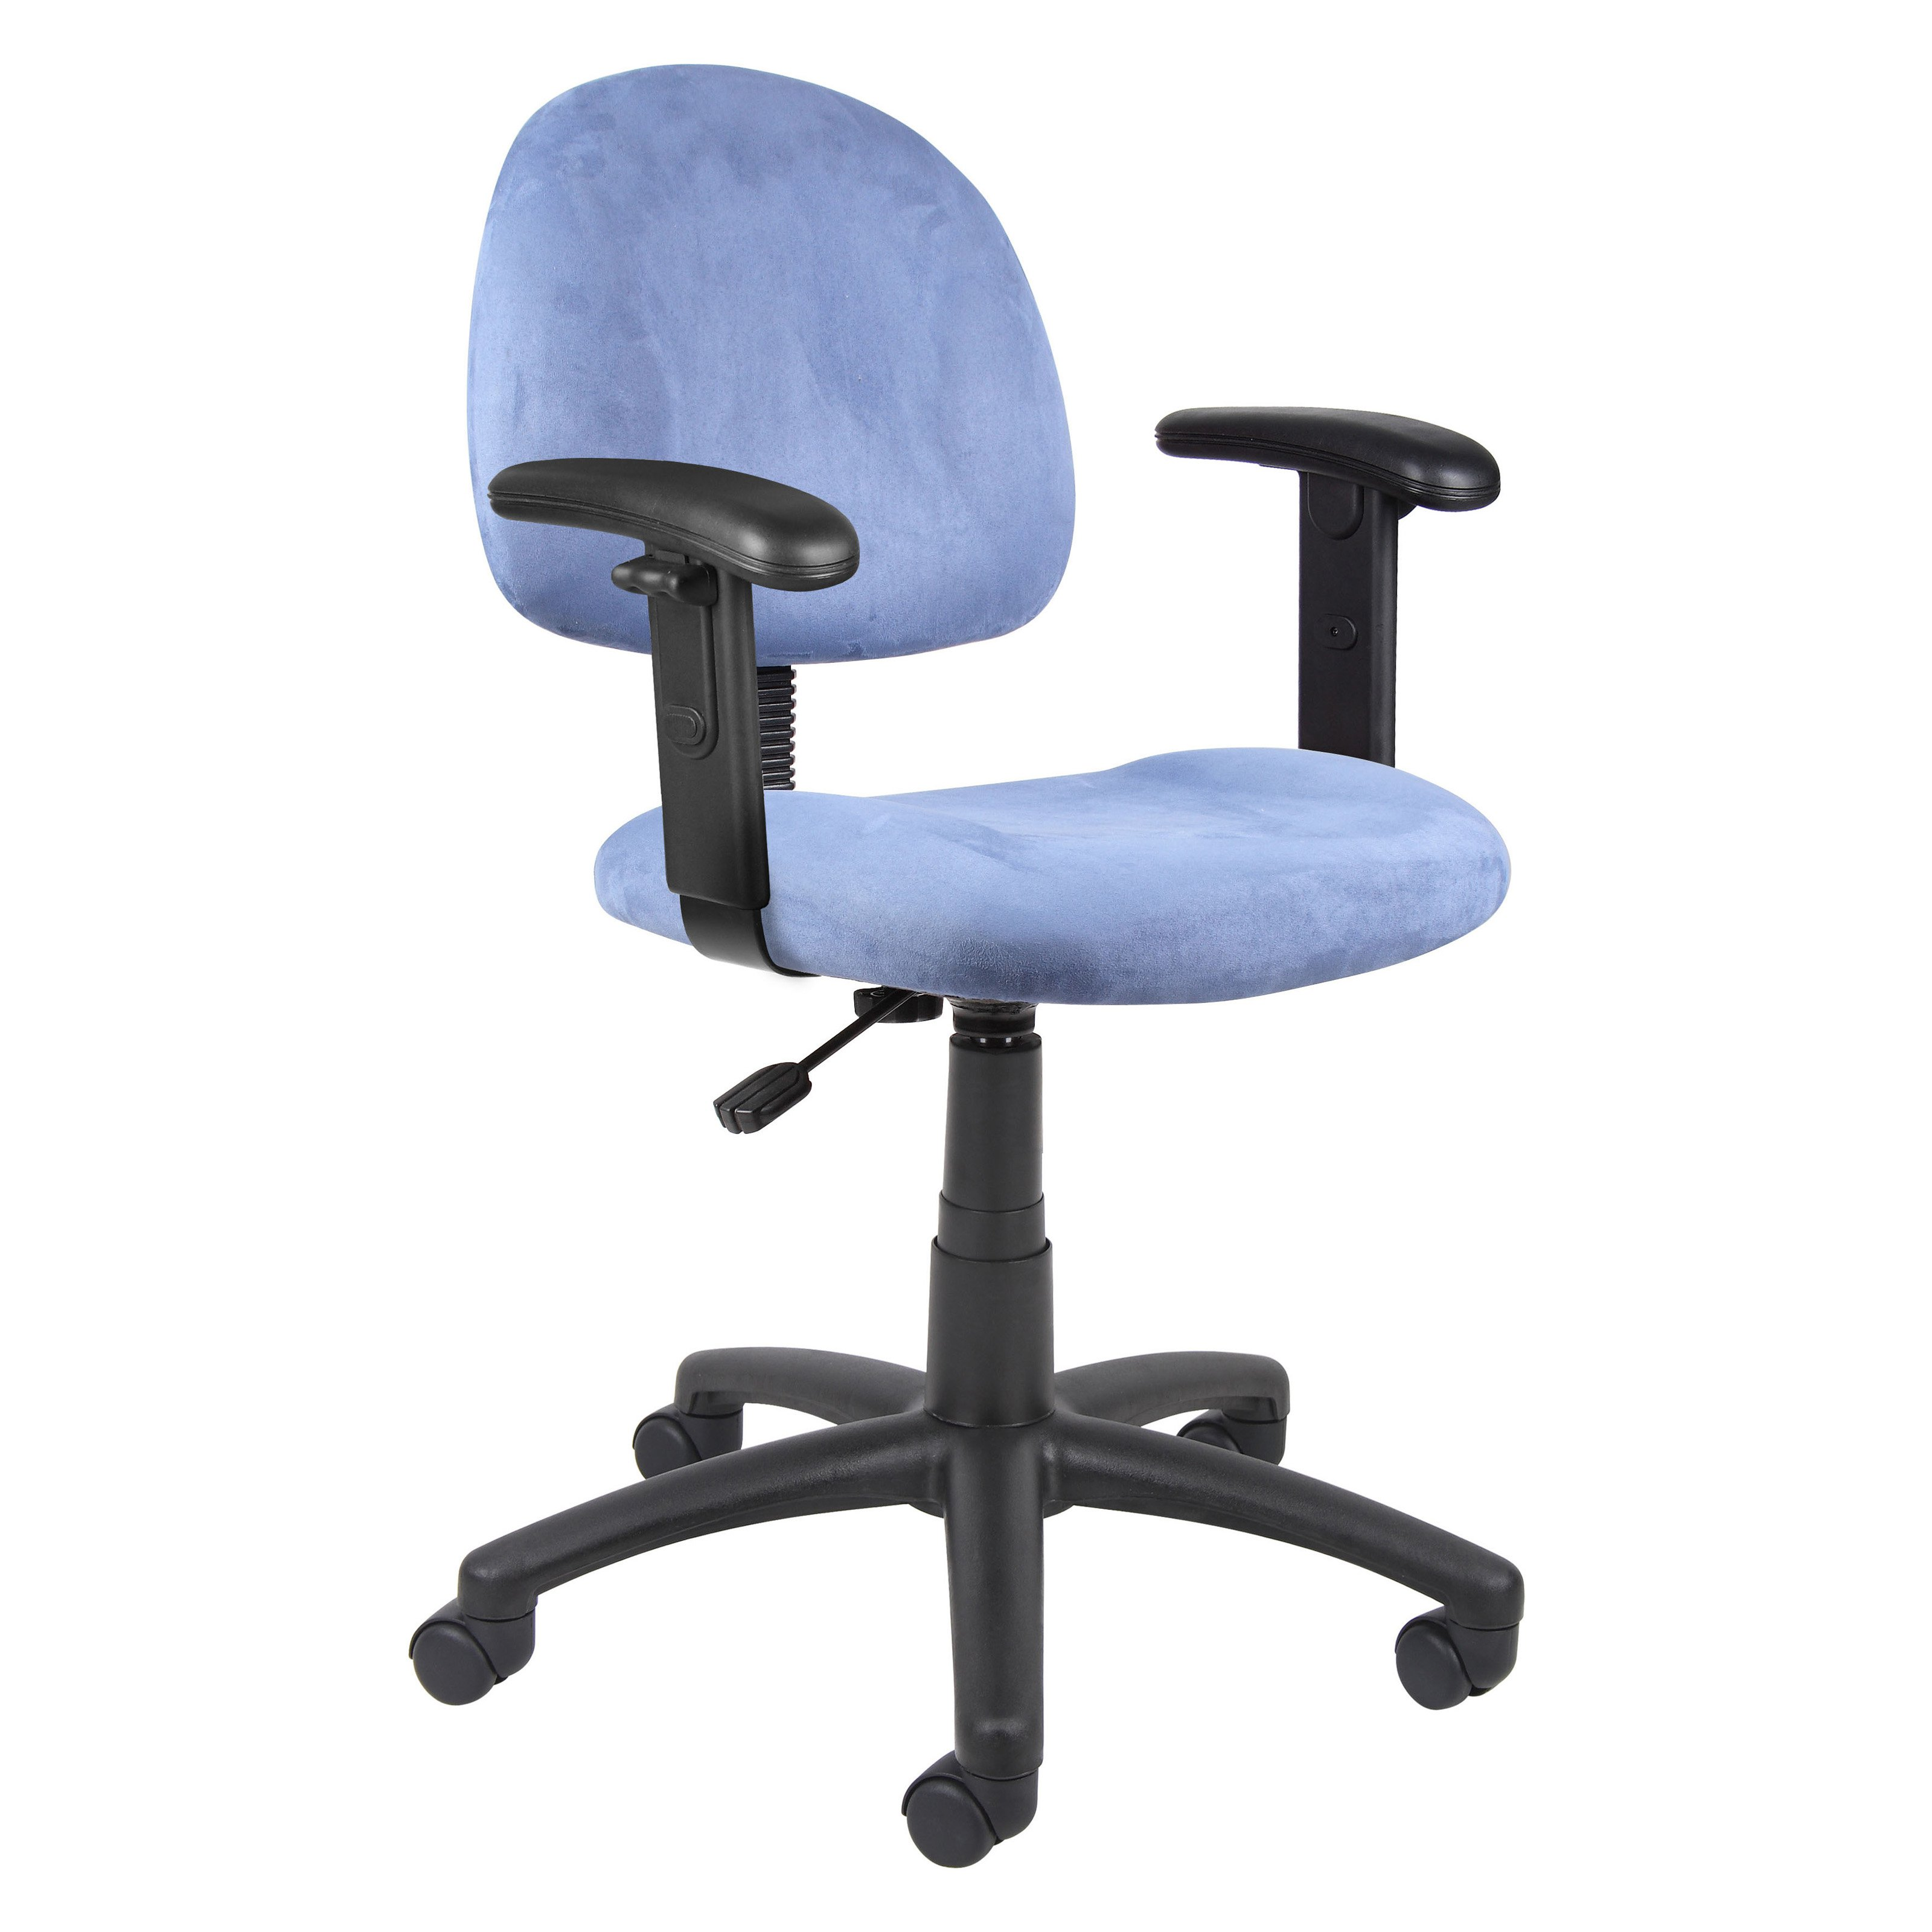 Office Chair With Adjustable Arms Boss Deluxe Desk Chair With Adjustable Arms Ebay